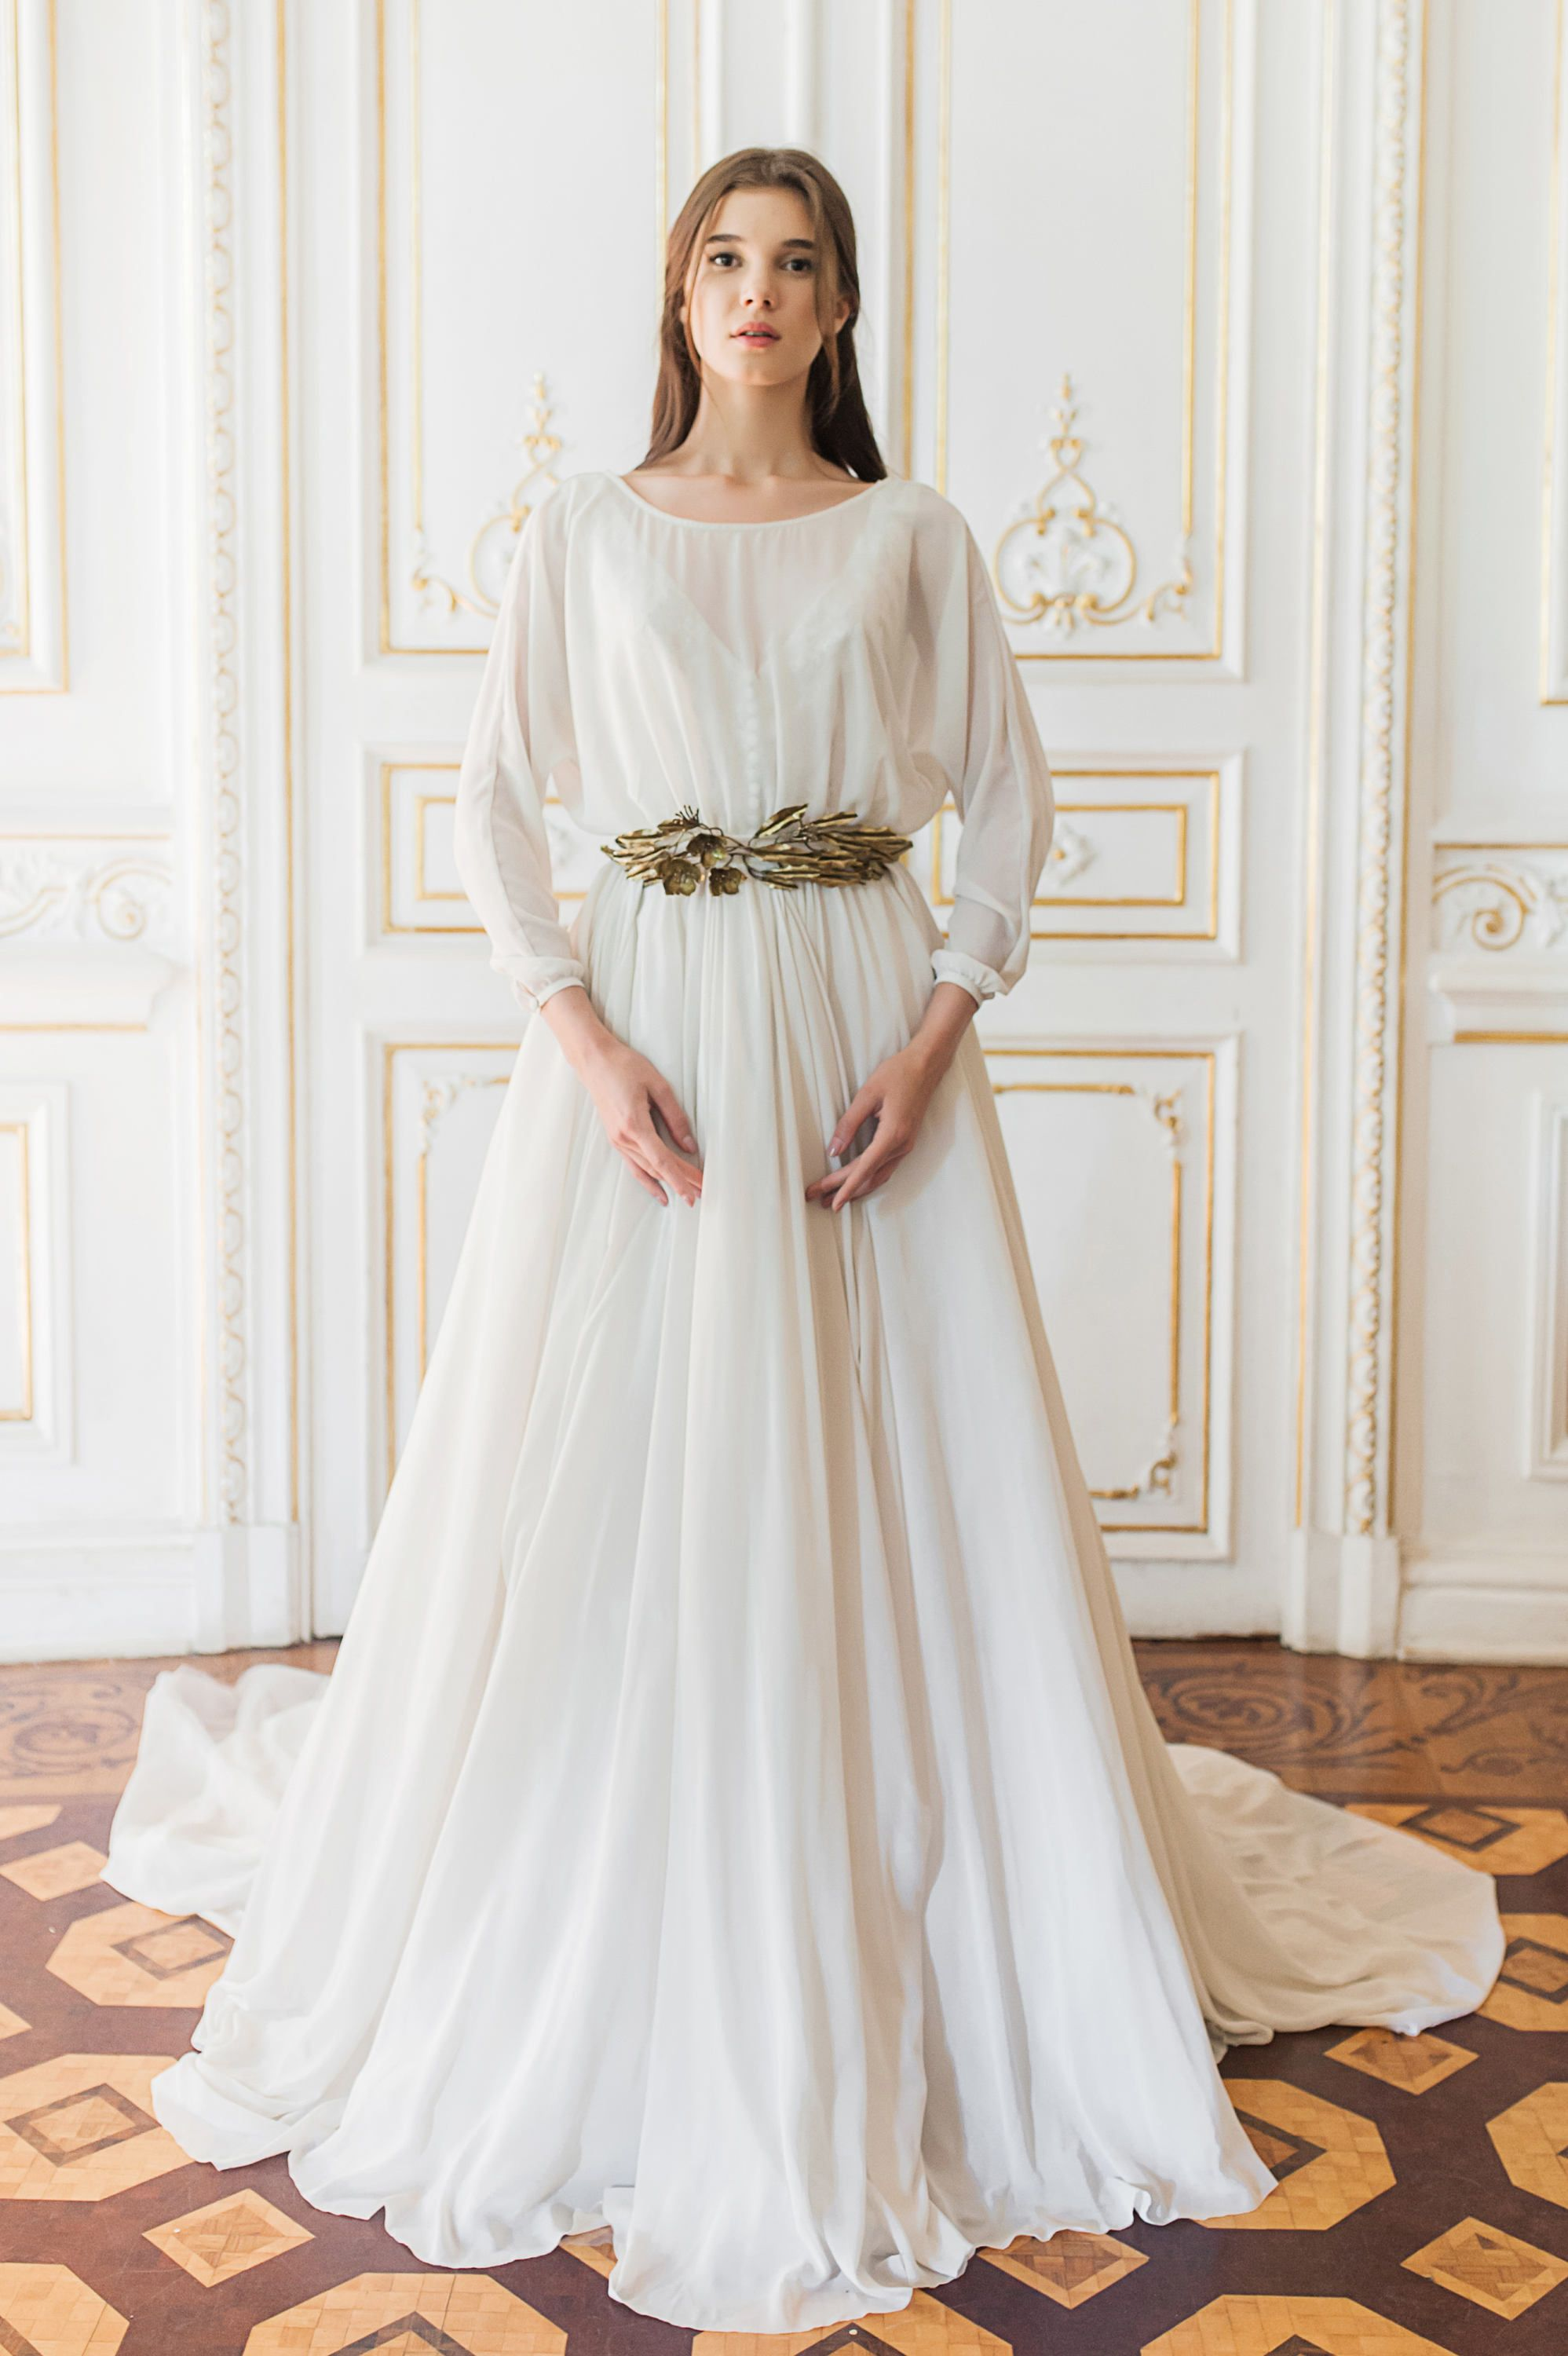 Long sleeve wedding gown with removable lace slip in 2020